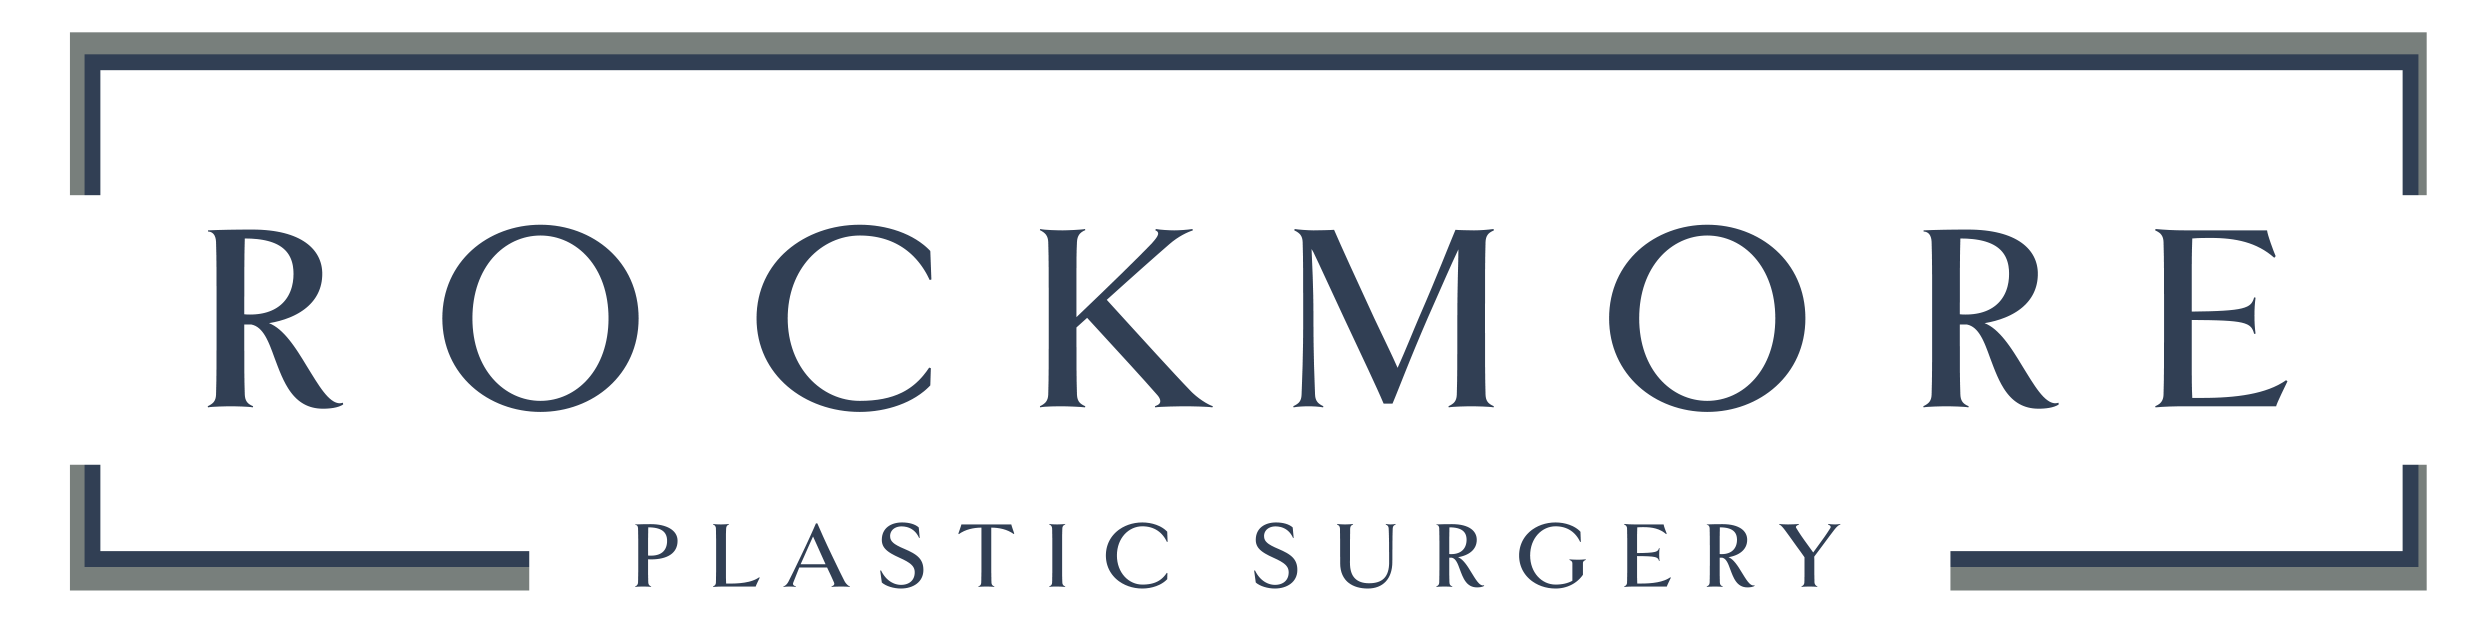 Rockmore Plastic Surgery logo, consisting of Rockmore in a box with Plastic Surgery breaking up the lower border of the box.